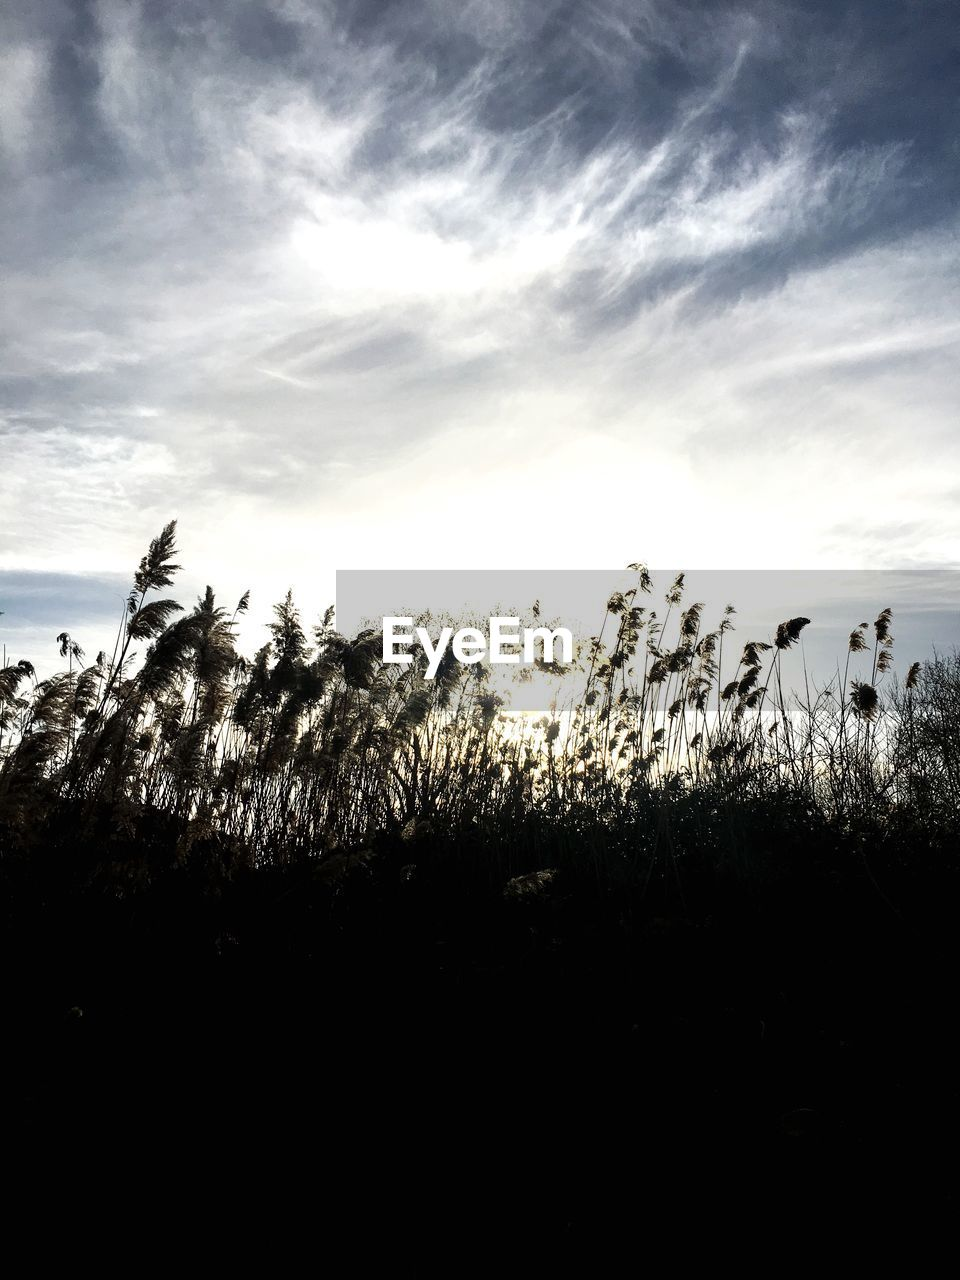 sky, cloud - sky, plant, tranquility, beauty in nature, tranquil scene, growth, tree, no people, nature, scenics - nature, silhouette, environment, outdoors, land, non-urban scene, day, landscape, field